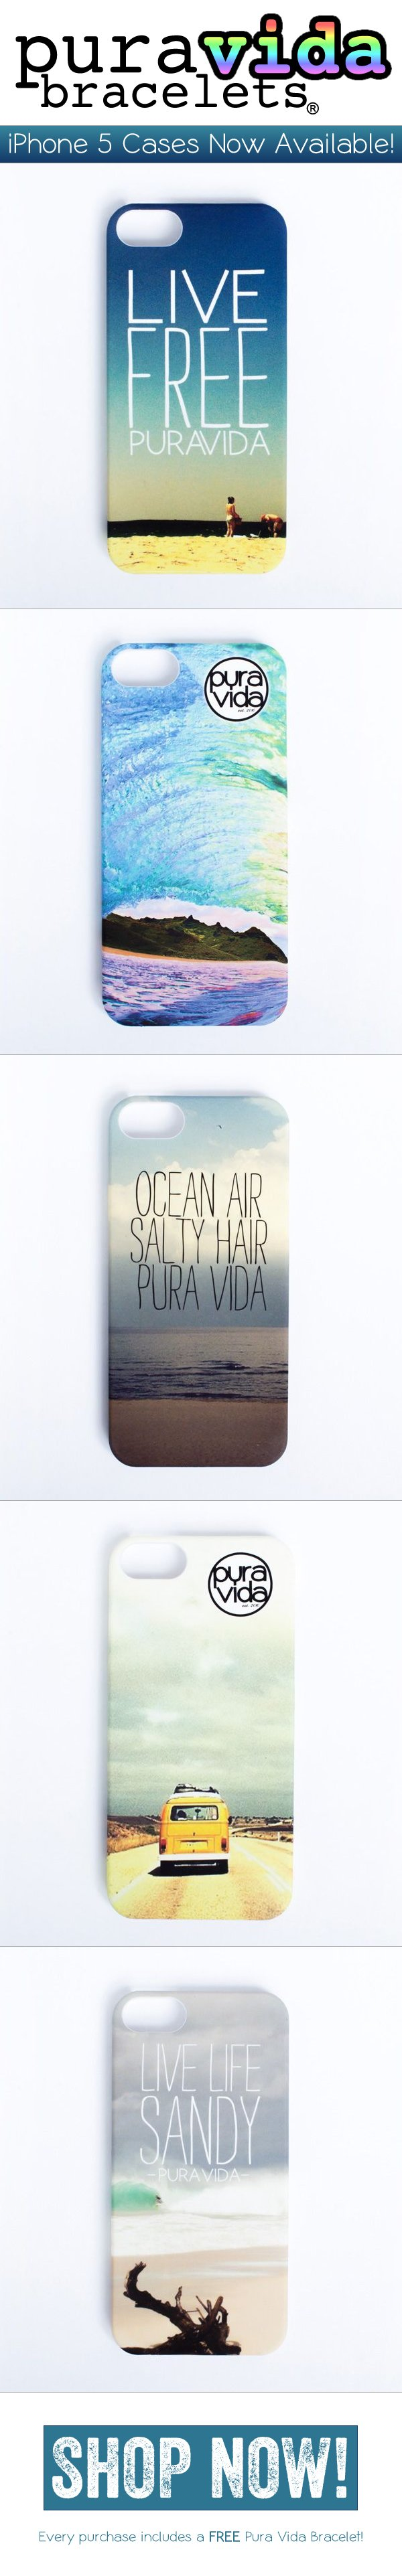 iPhone 5 Cases Now Available!